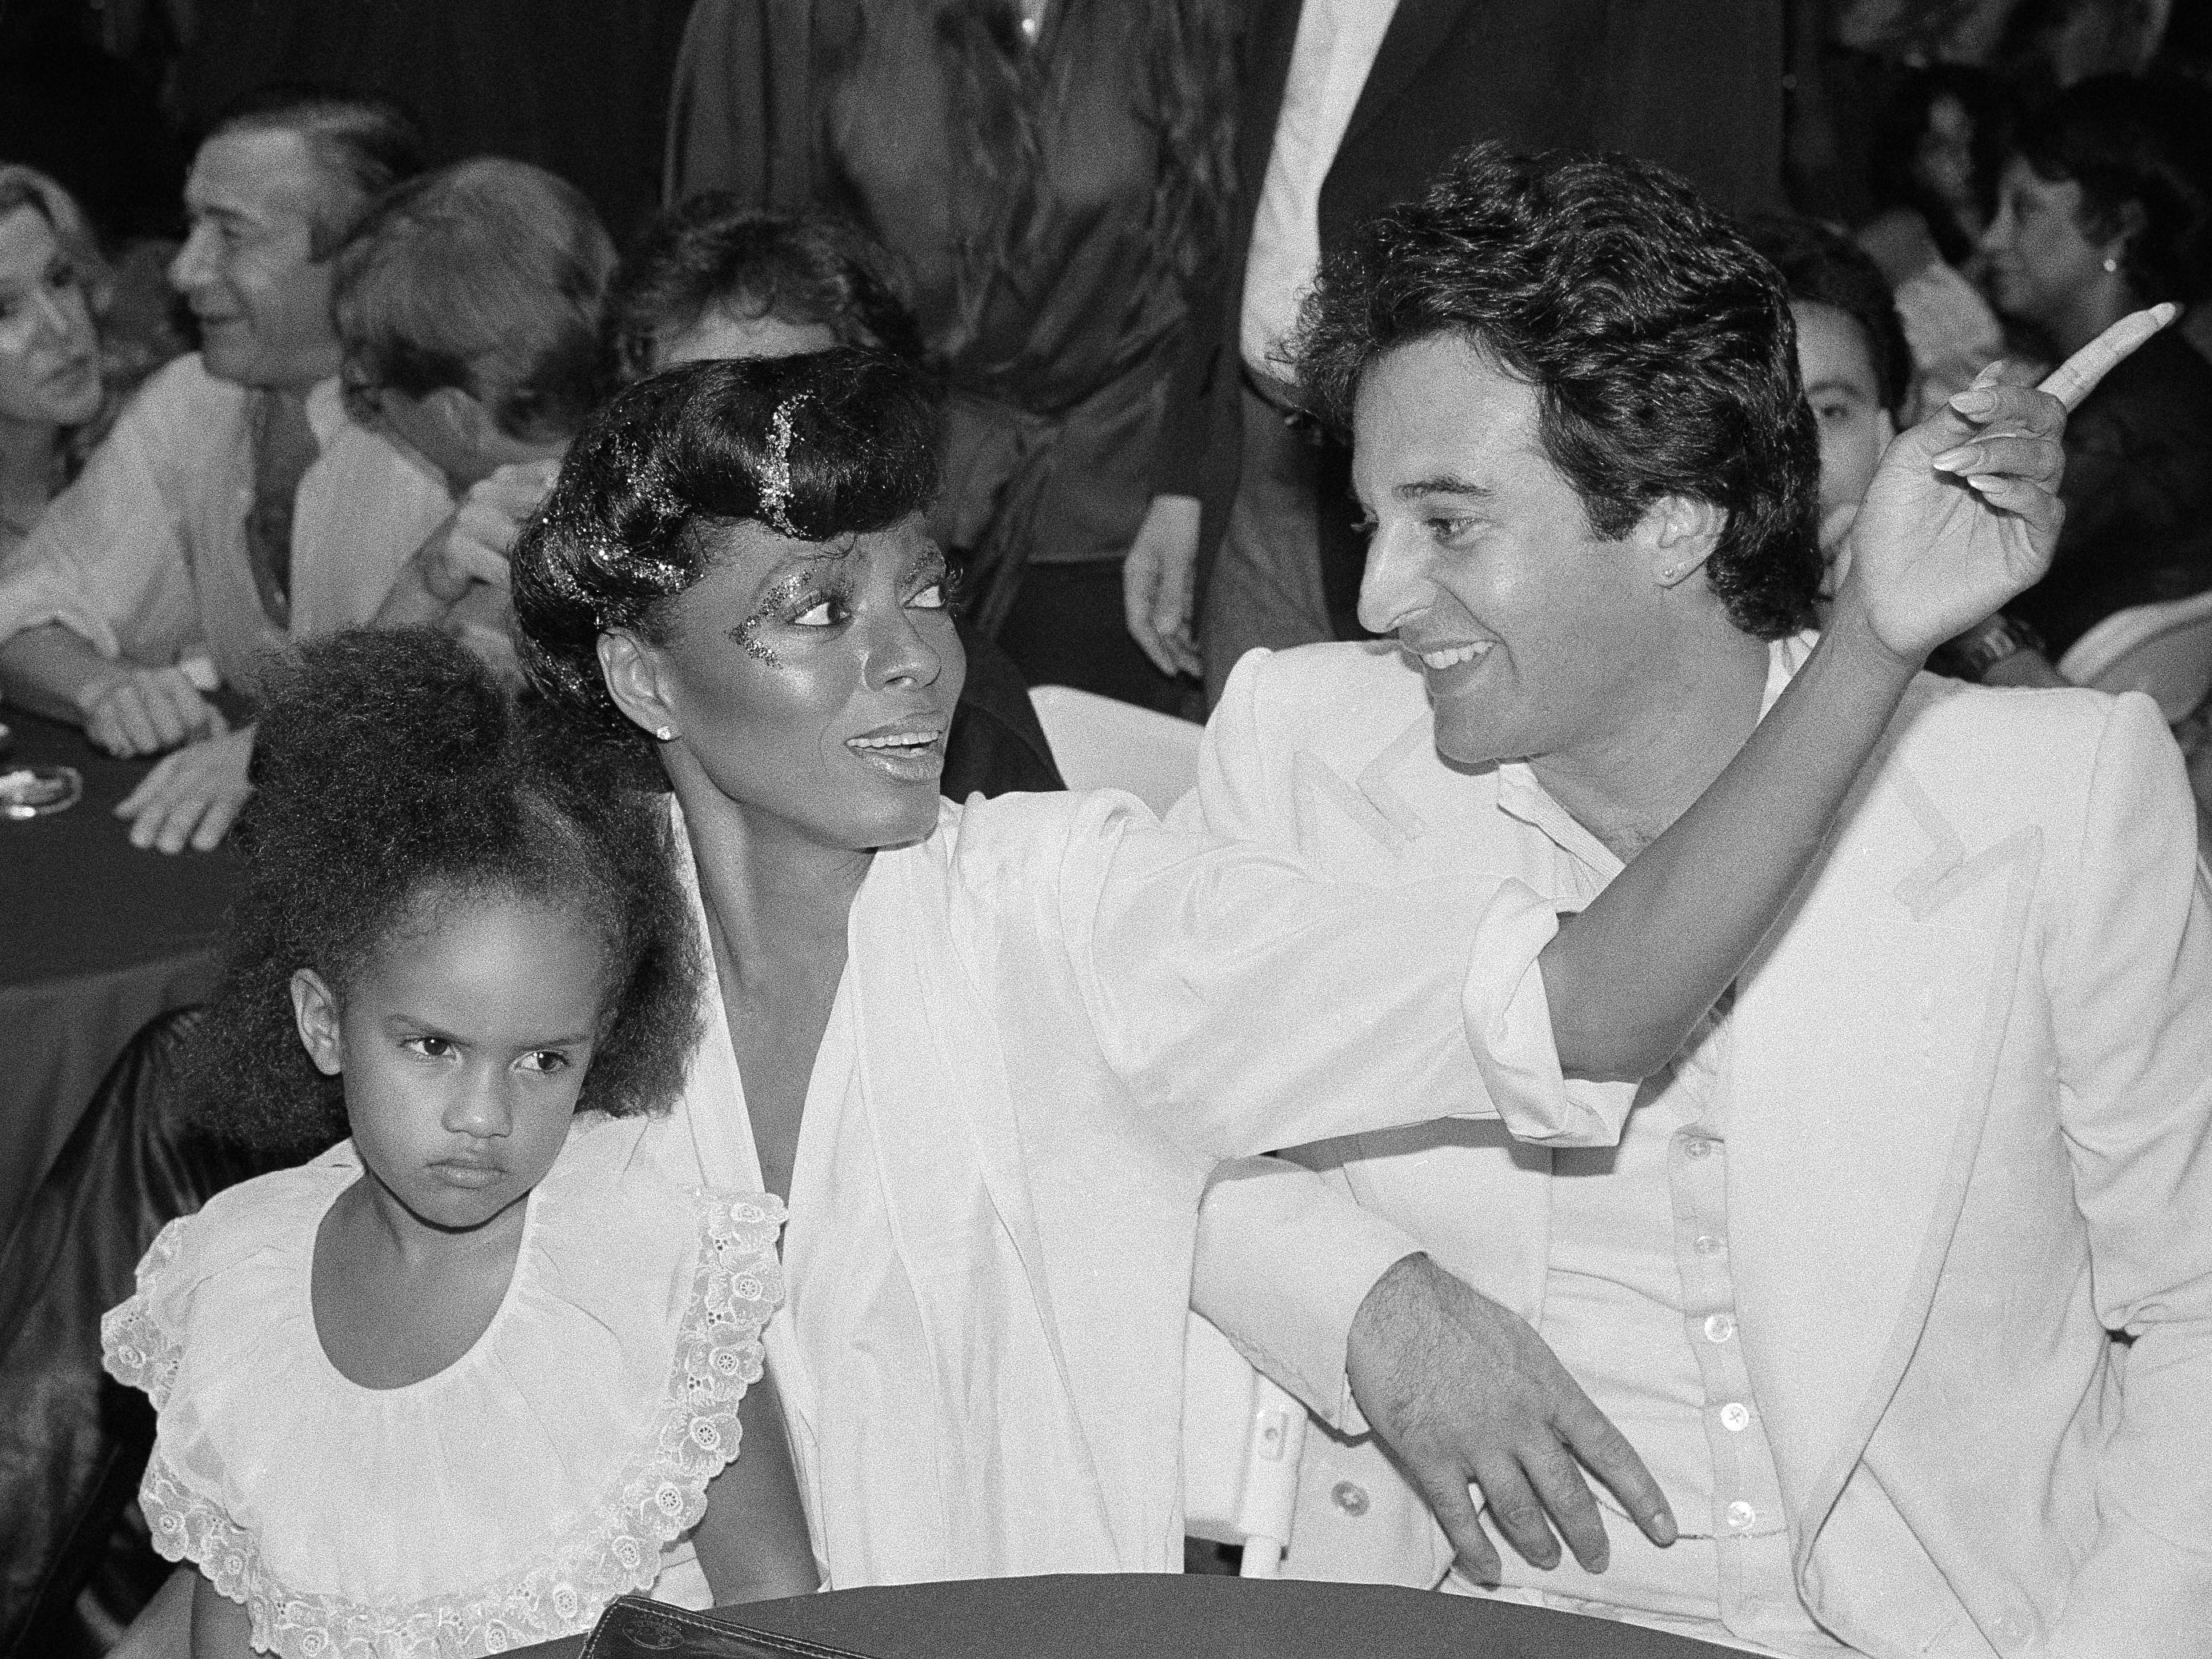 Diana Ross chats with her ex husband, Robert Ellis Silverstein, right, in August 1979, before the start of a performance by Mary Wilson, who was by now a solo artist.  Ross holds 4-year-old Tarkasa, Mary Wilson's daughter, on her lap.